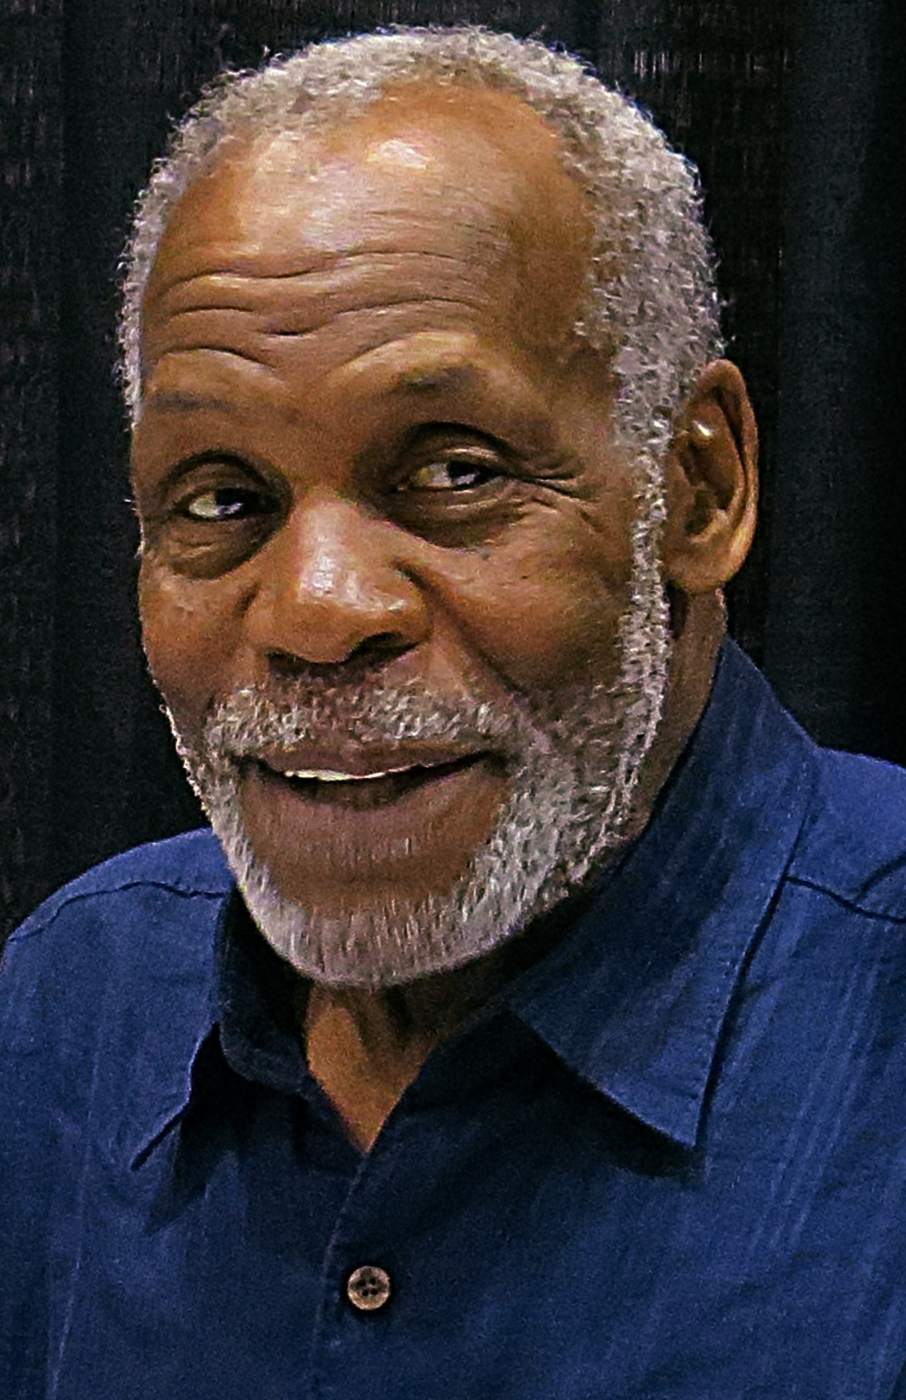 Morgan Freeman Biography - Biography.com